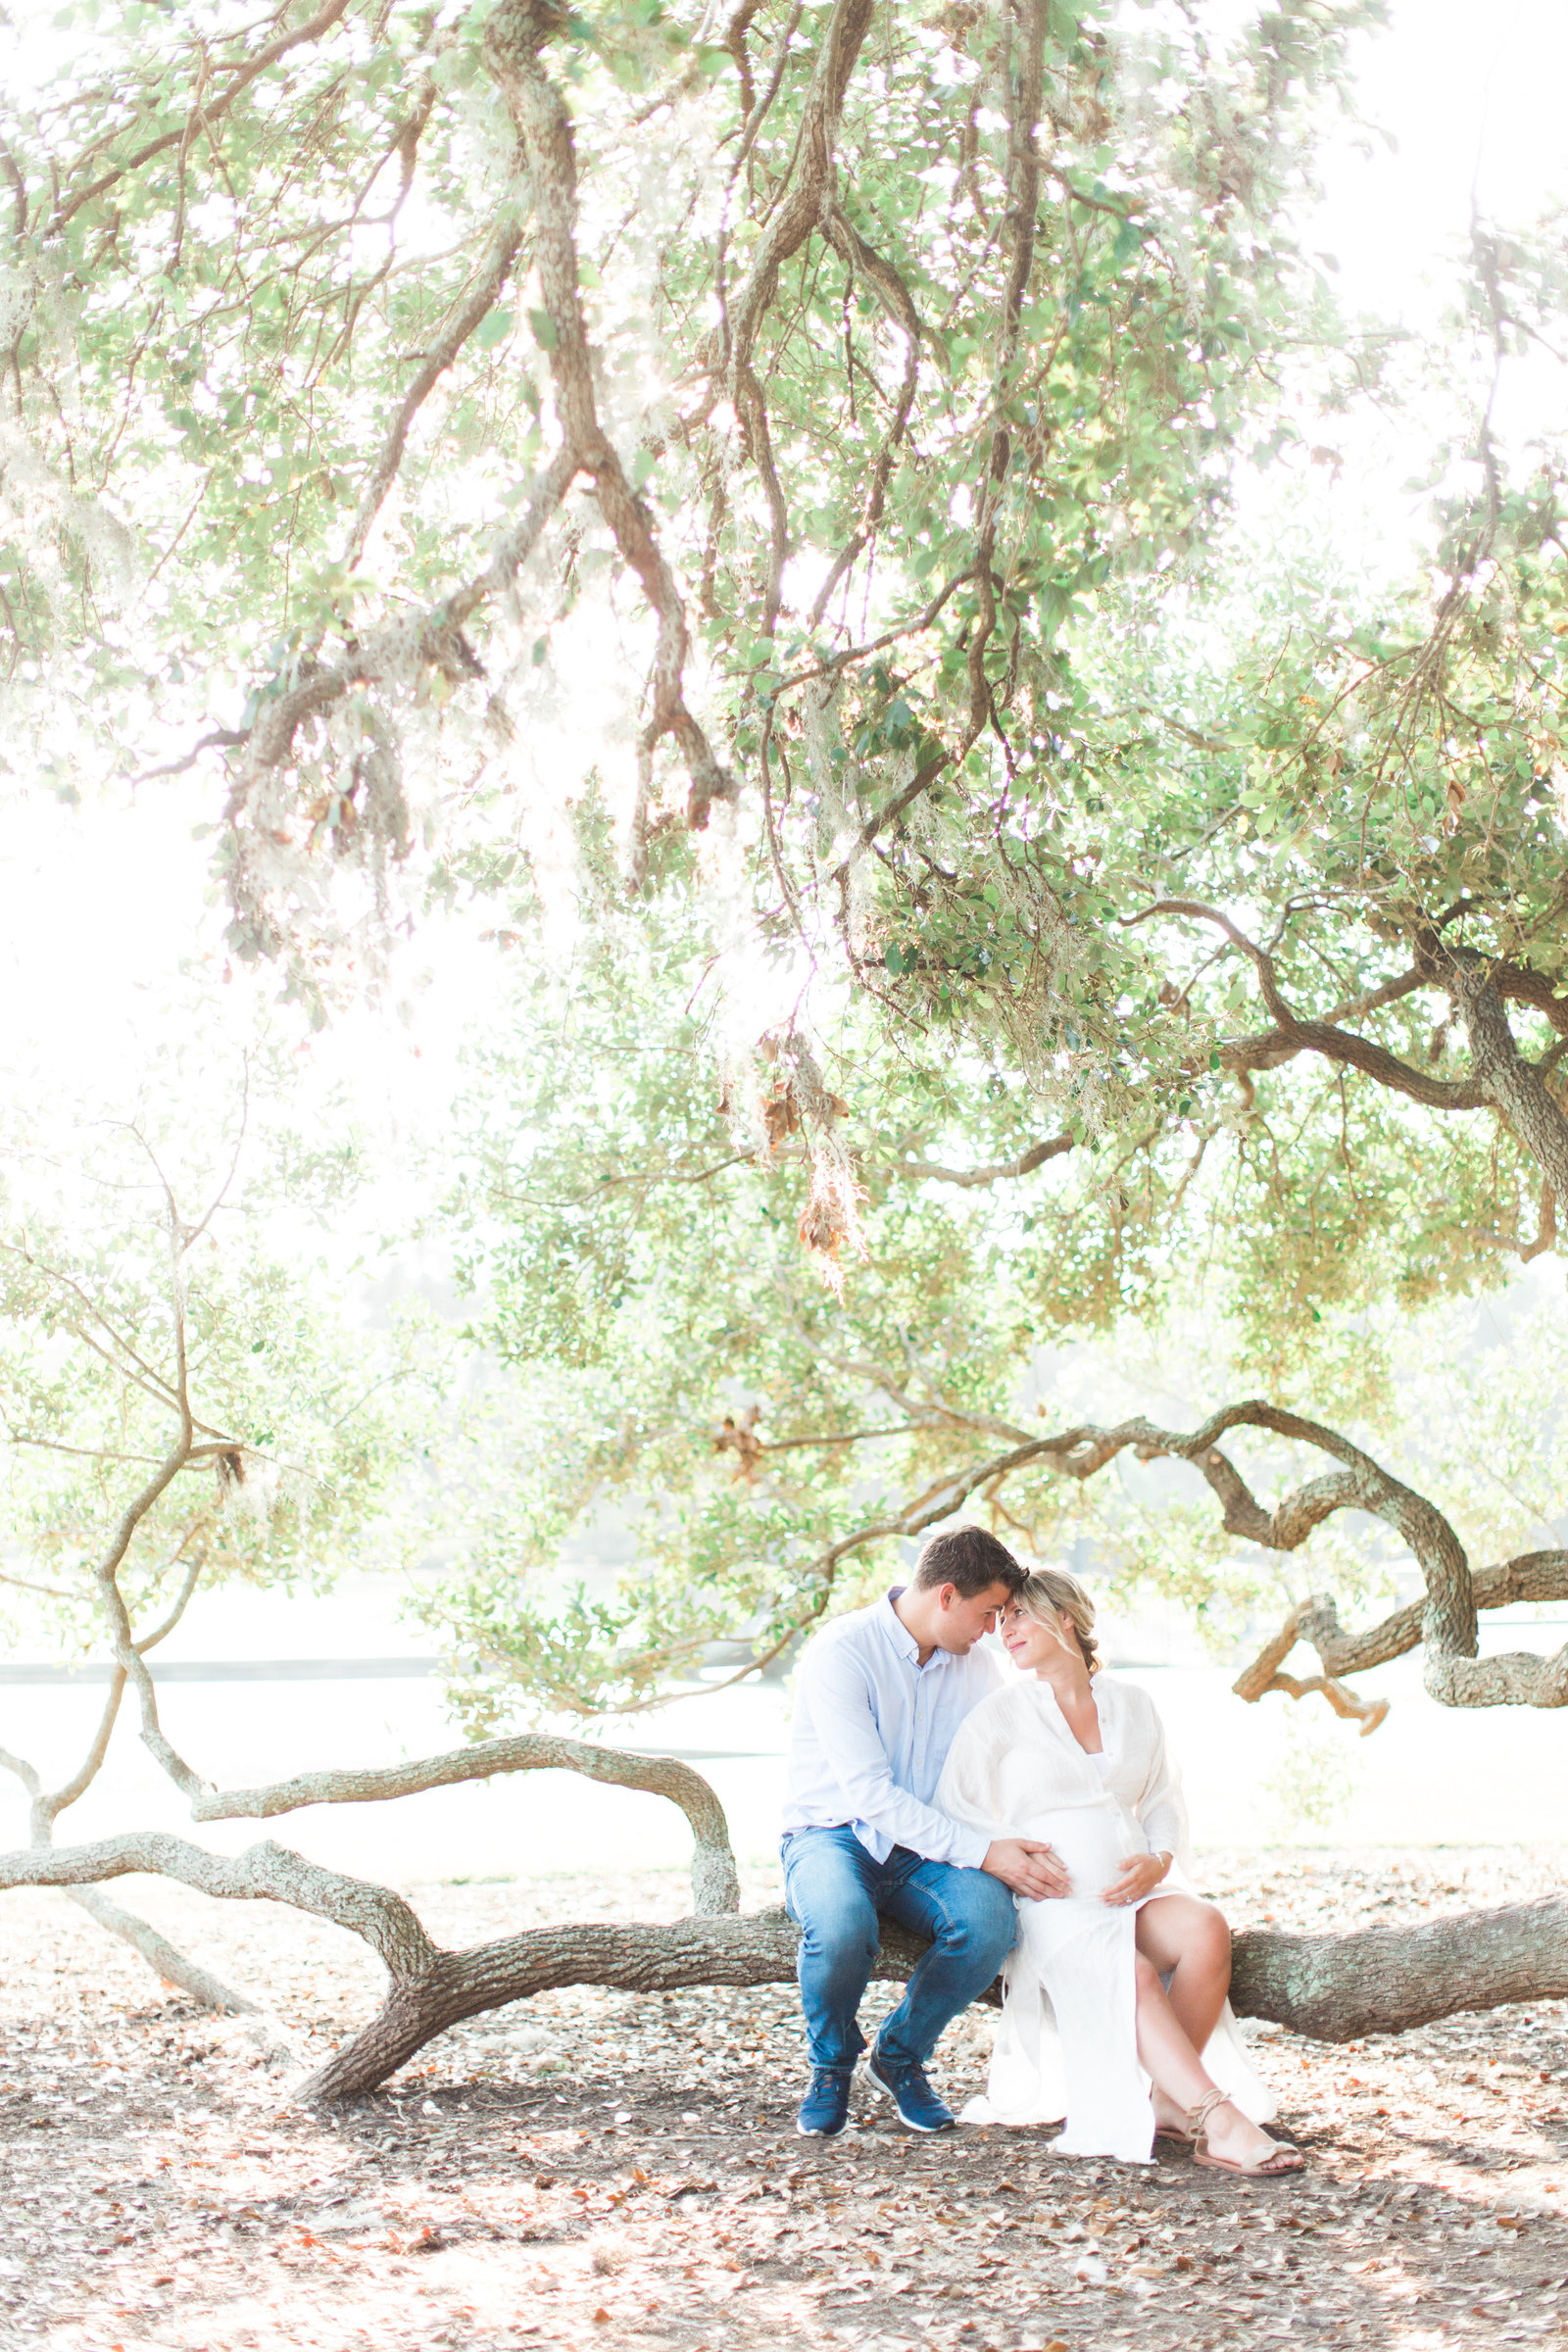 clay_jessie_charleston_maternity-84